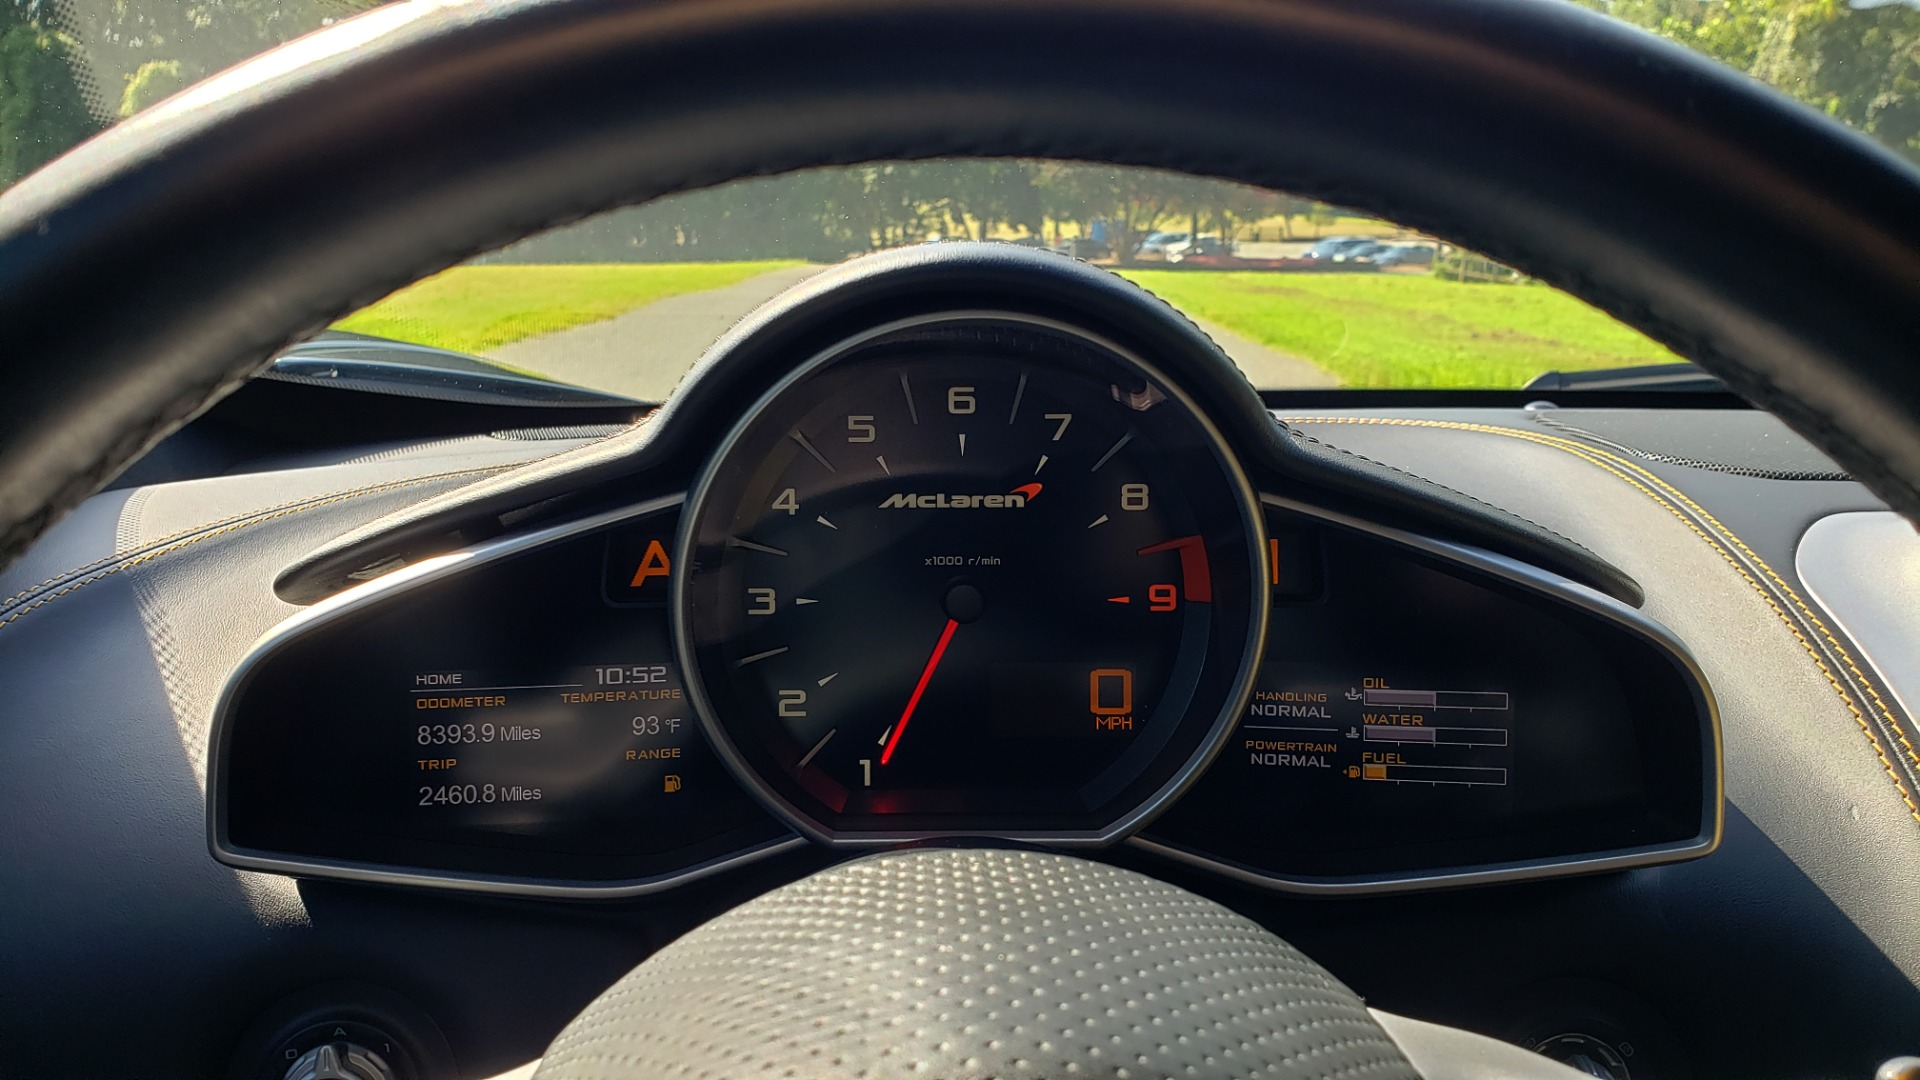 Used 2012 McLaren MP4-12C COUPE / 3.8 L V8 592HP / AUTO / NAV / CCB / LOW MILES for sale $97,999 at Formula Imports in Charlotte NC 28227 40